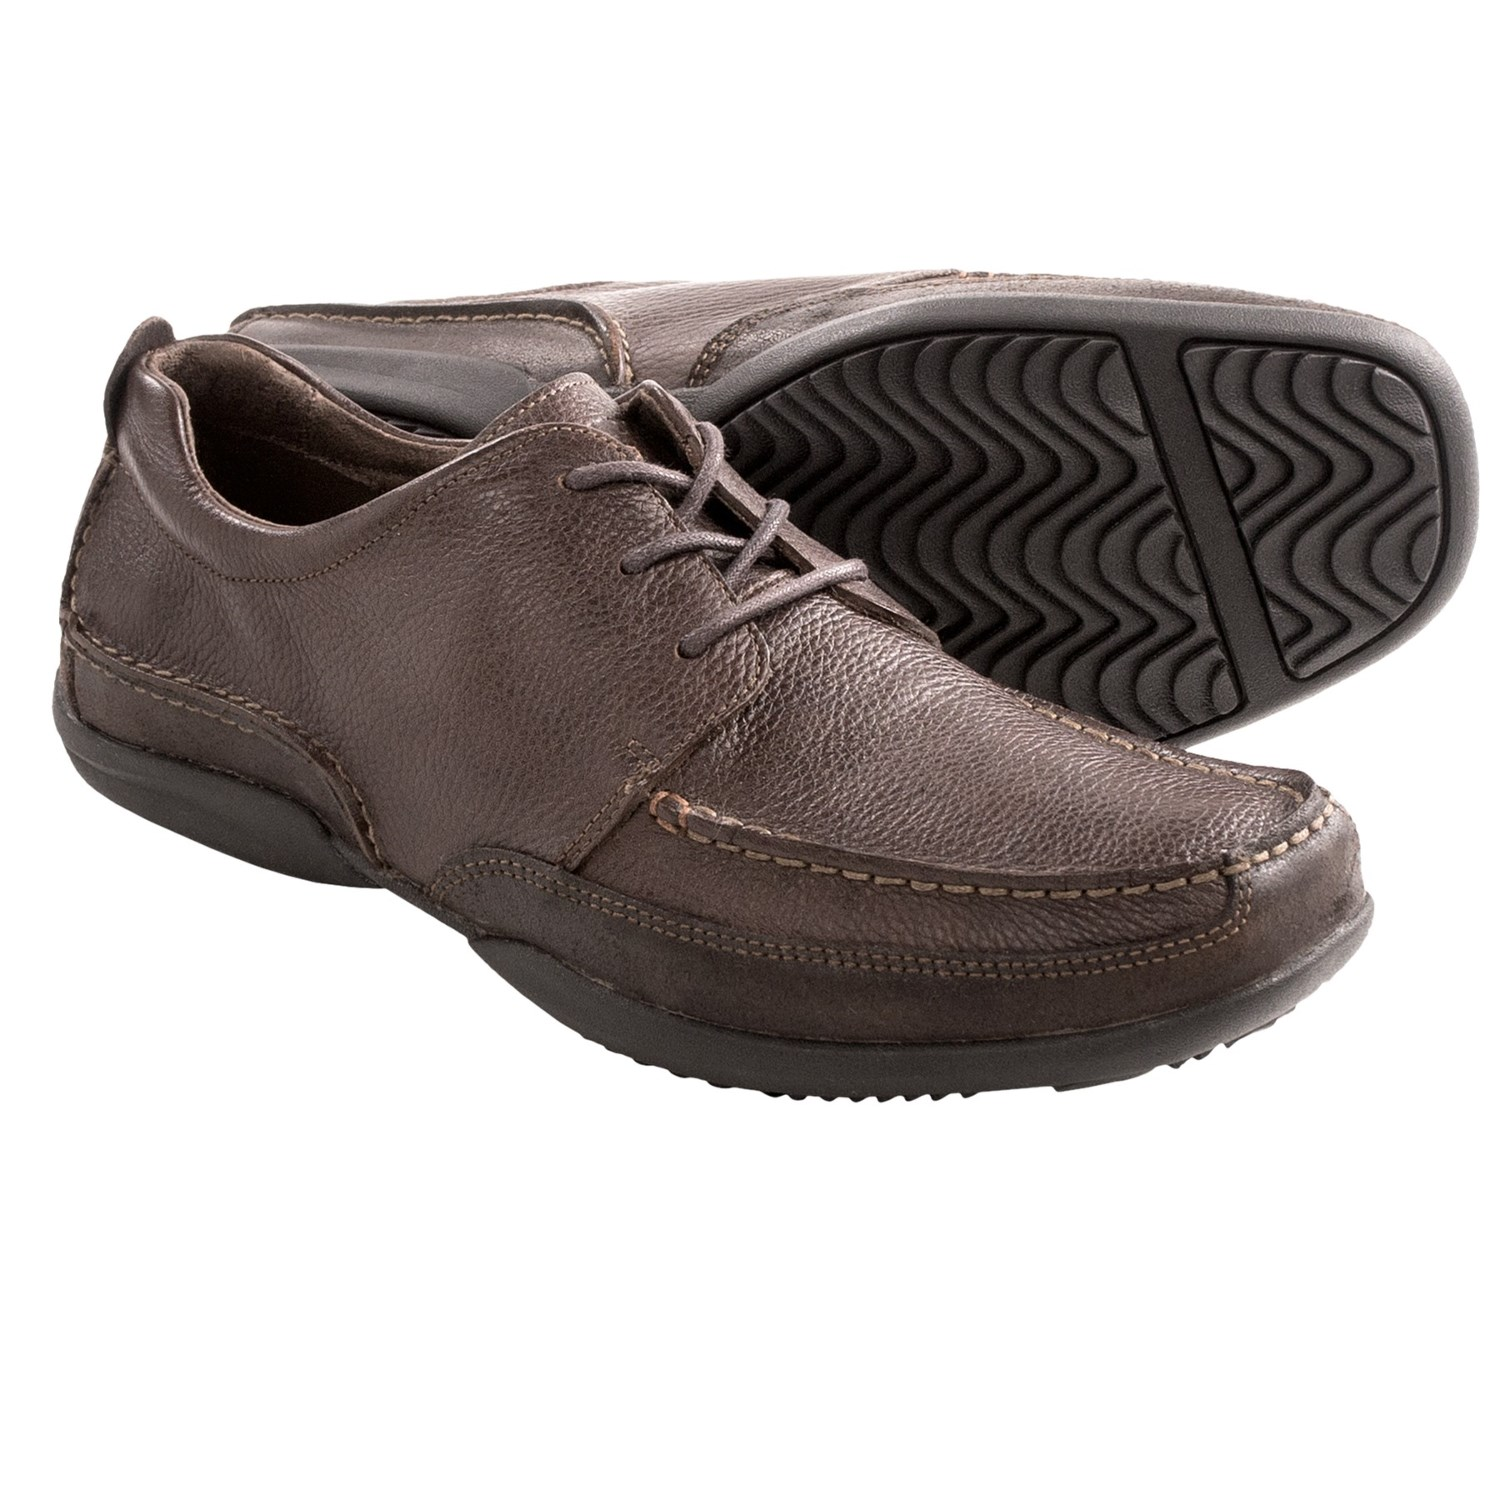 Hush Puppies Accel Oxford Shoes - Moc Toe (For Men) in Dark Brown